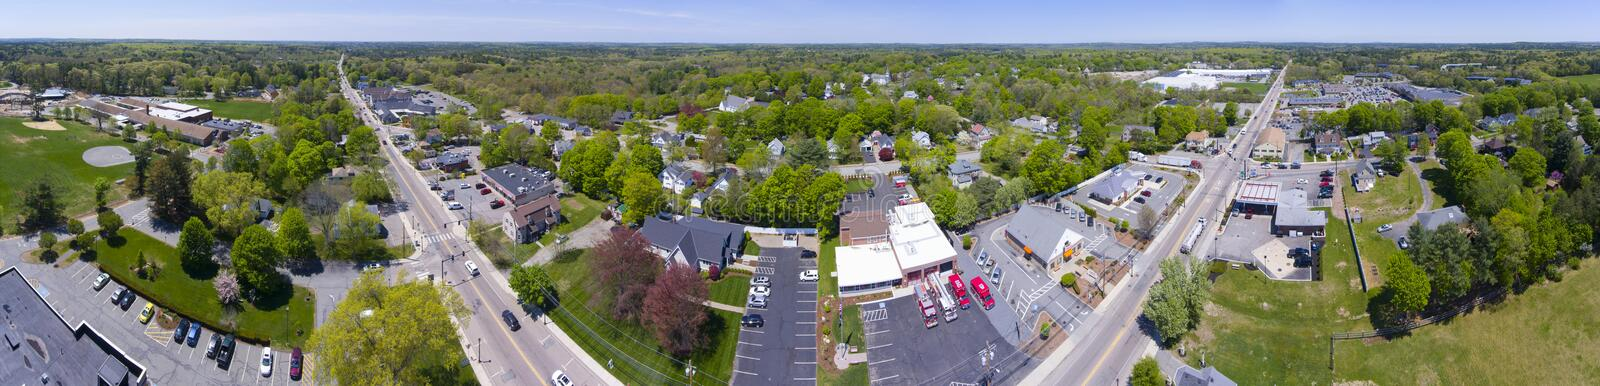 Millis aerial view panorama, Massachusetts, USA. Aerial view of Millis town center over Main Street panorama in spring, Millis, Massachusetts, USA stock images